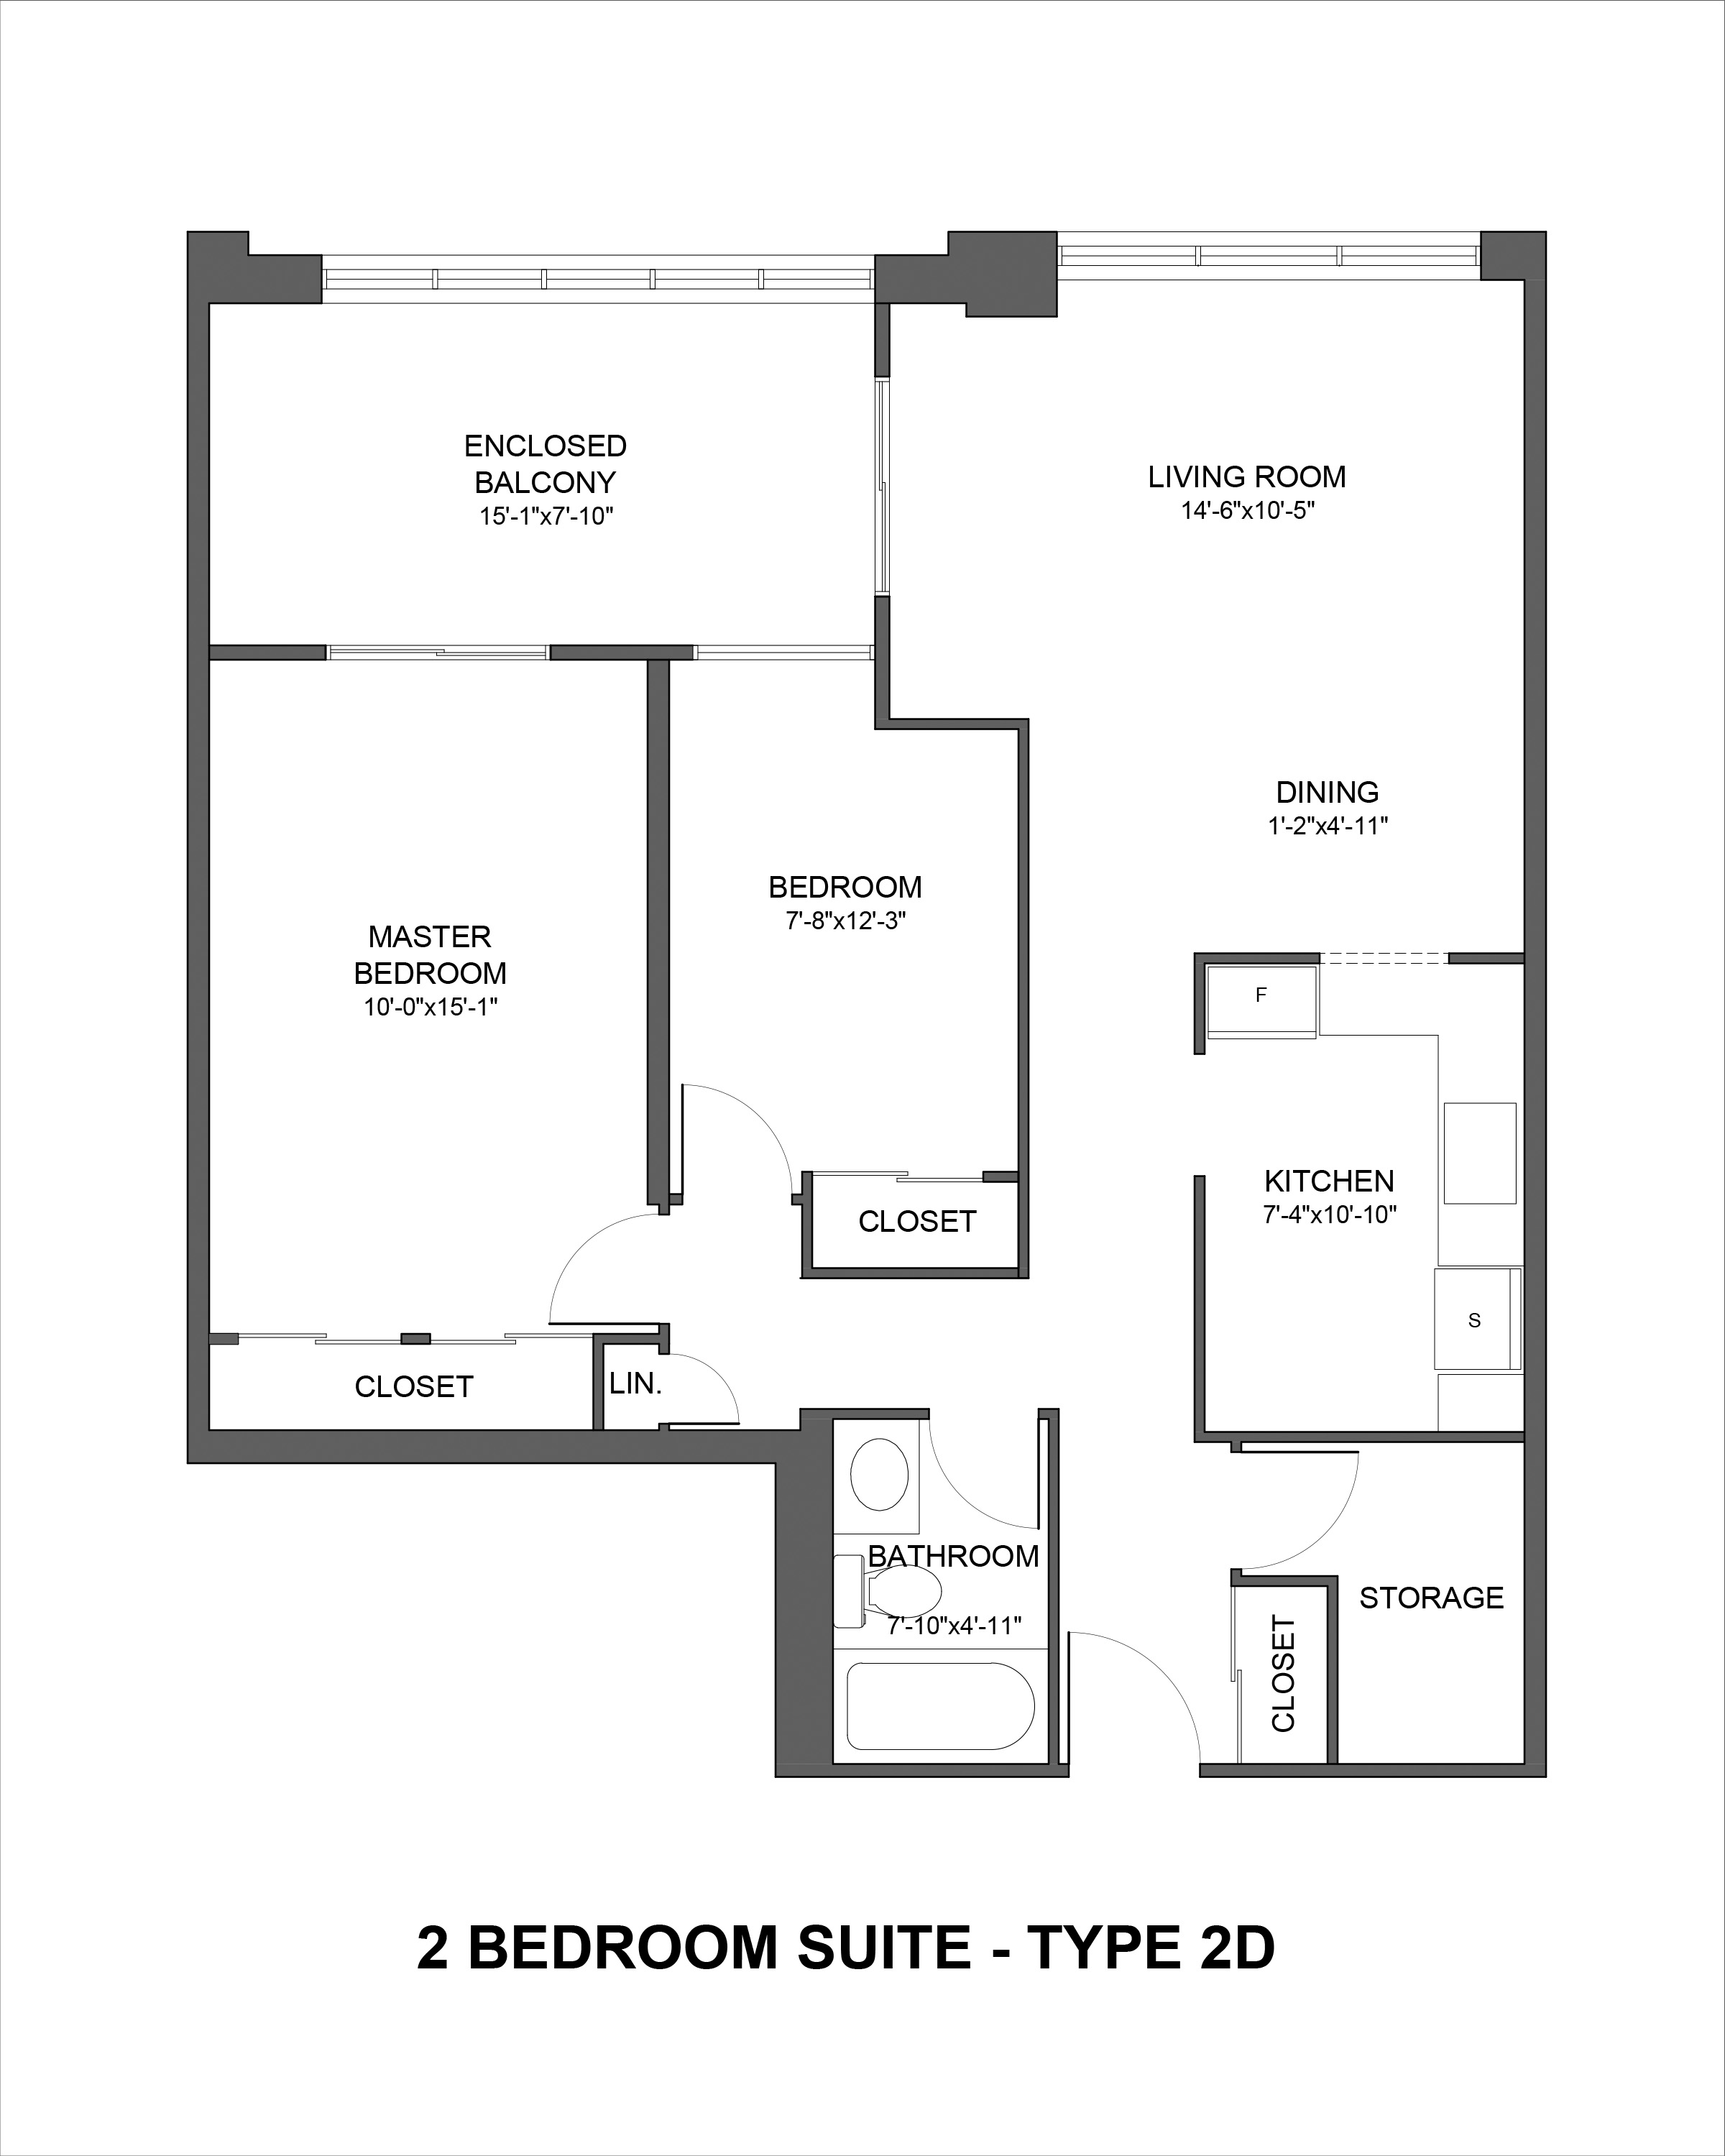 Floorplan for Type 2D 2 bedroom suite